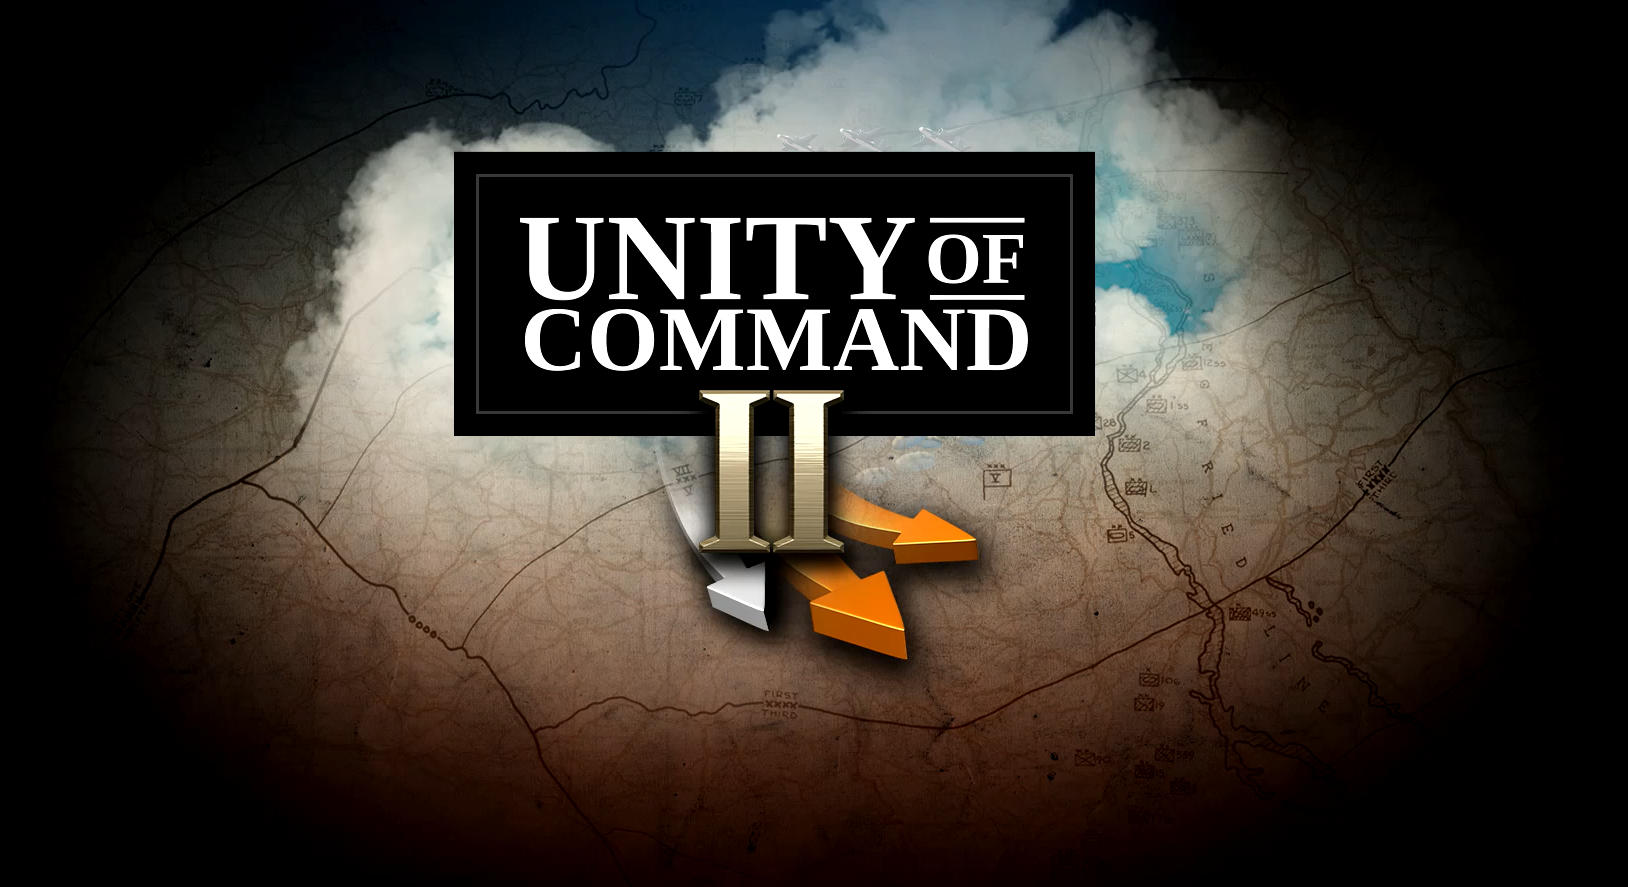 Unity of Command II - Moscow 41 Free Download